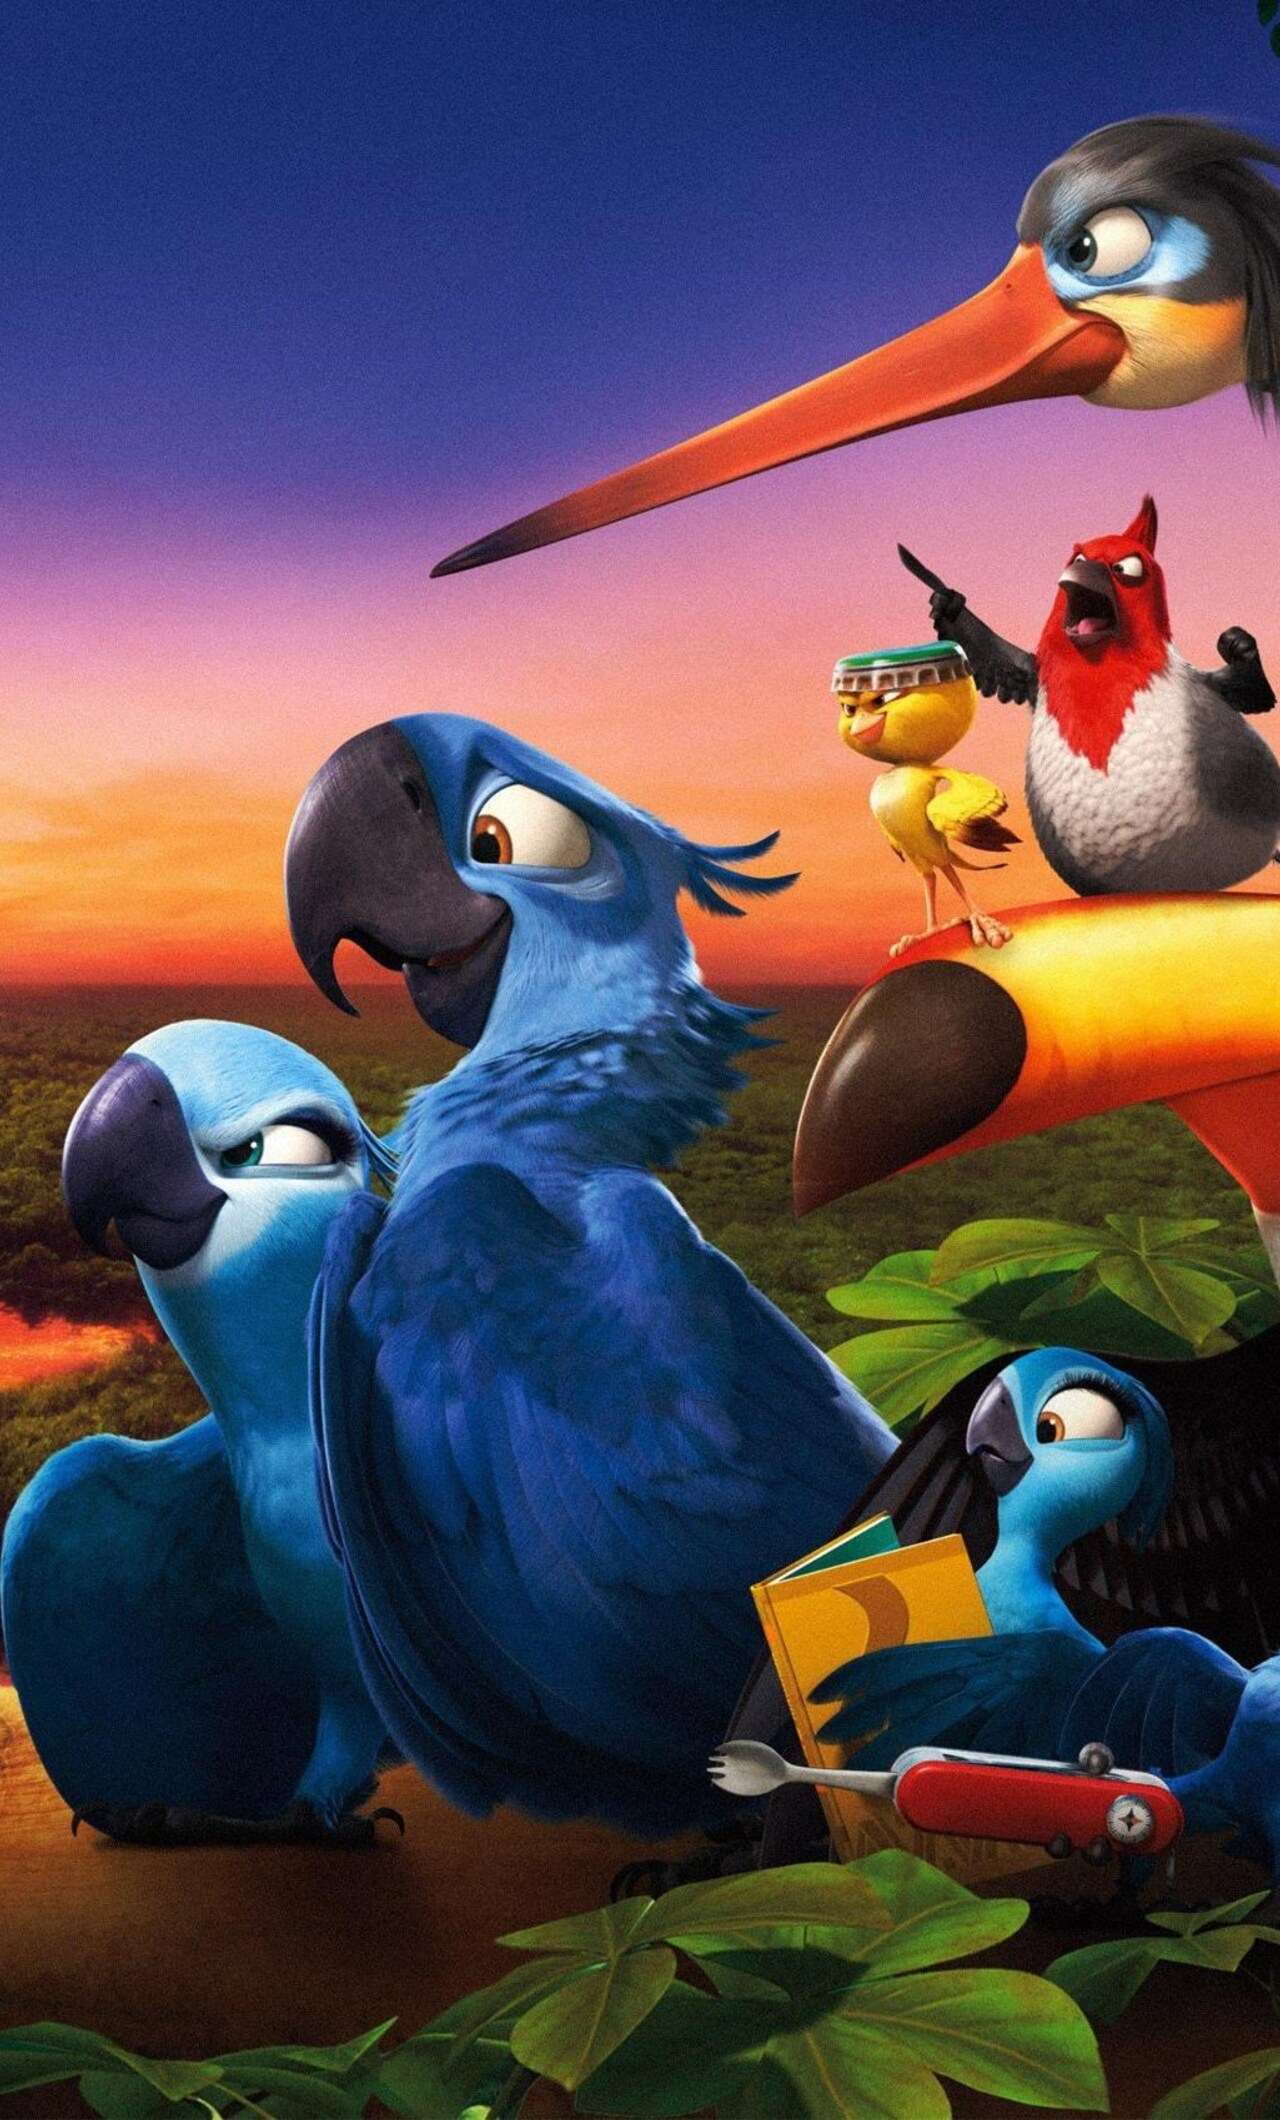 1280x2120 rio 2 movie wide iphone 6+ hd 4k wallpapers, images